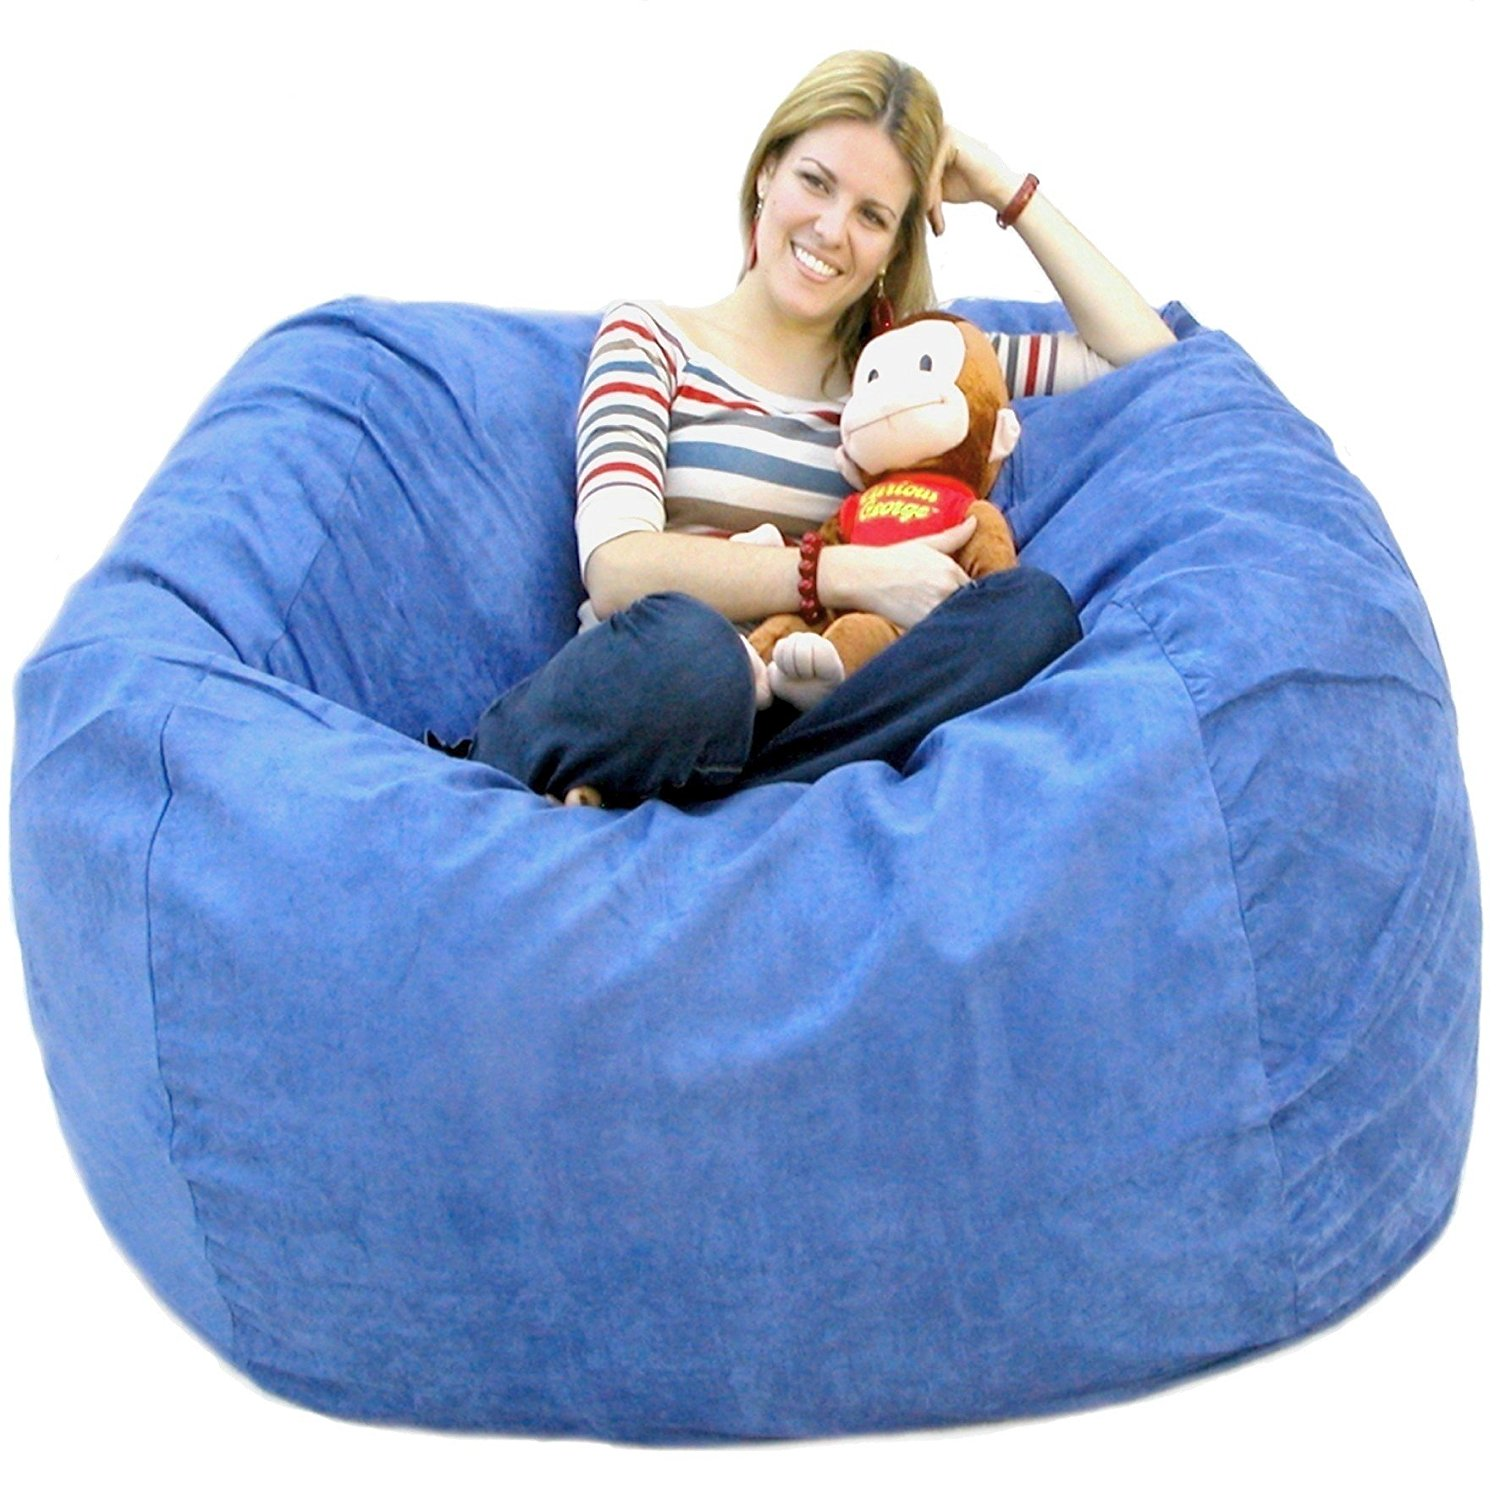 BEST BEAN BAG CHAIRS FOR ADULT IN 2018